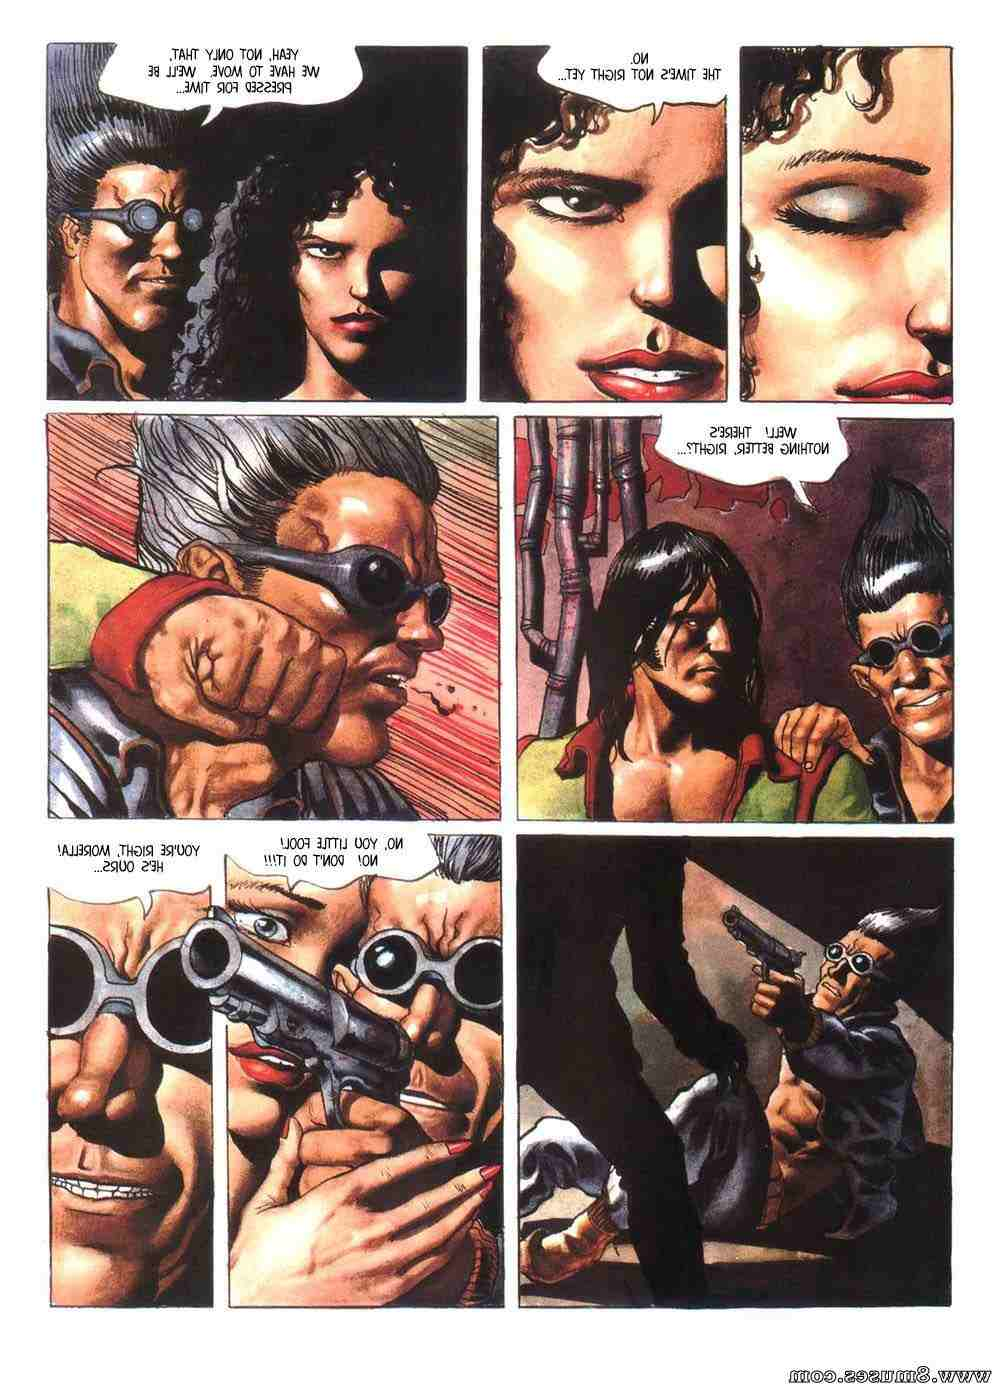 Various-Authors/Starzo/Mike-Mercury Mike_Mercury__8muses_-_Sex_and_Porn_Comics_24.jpg